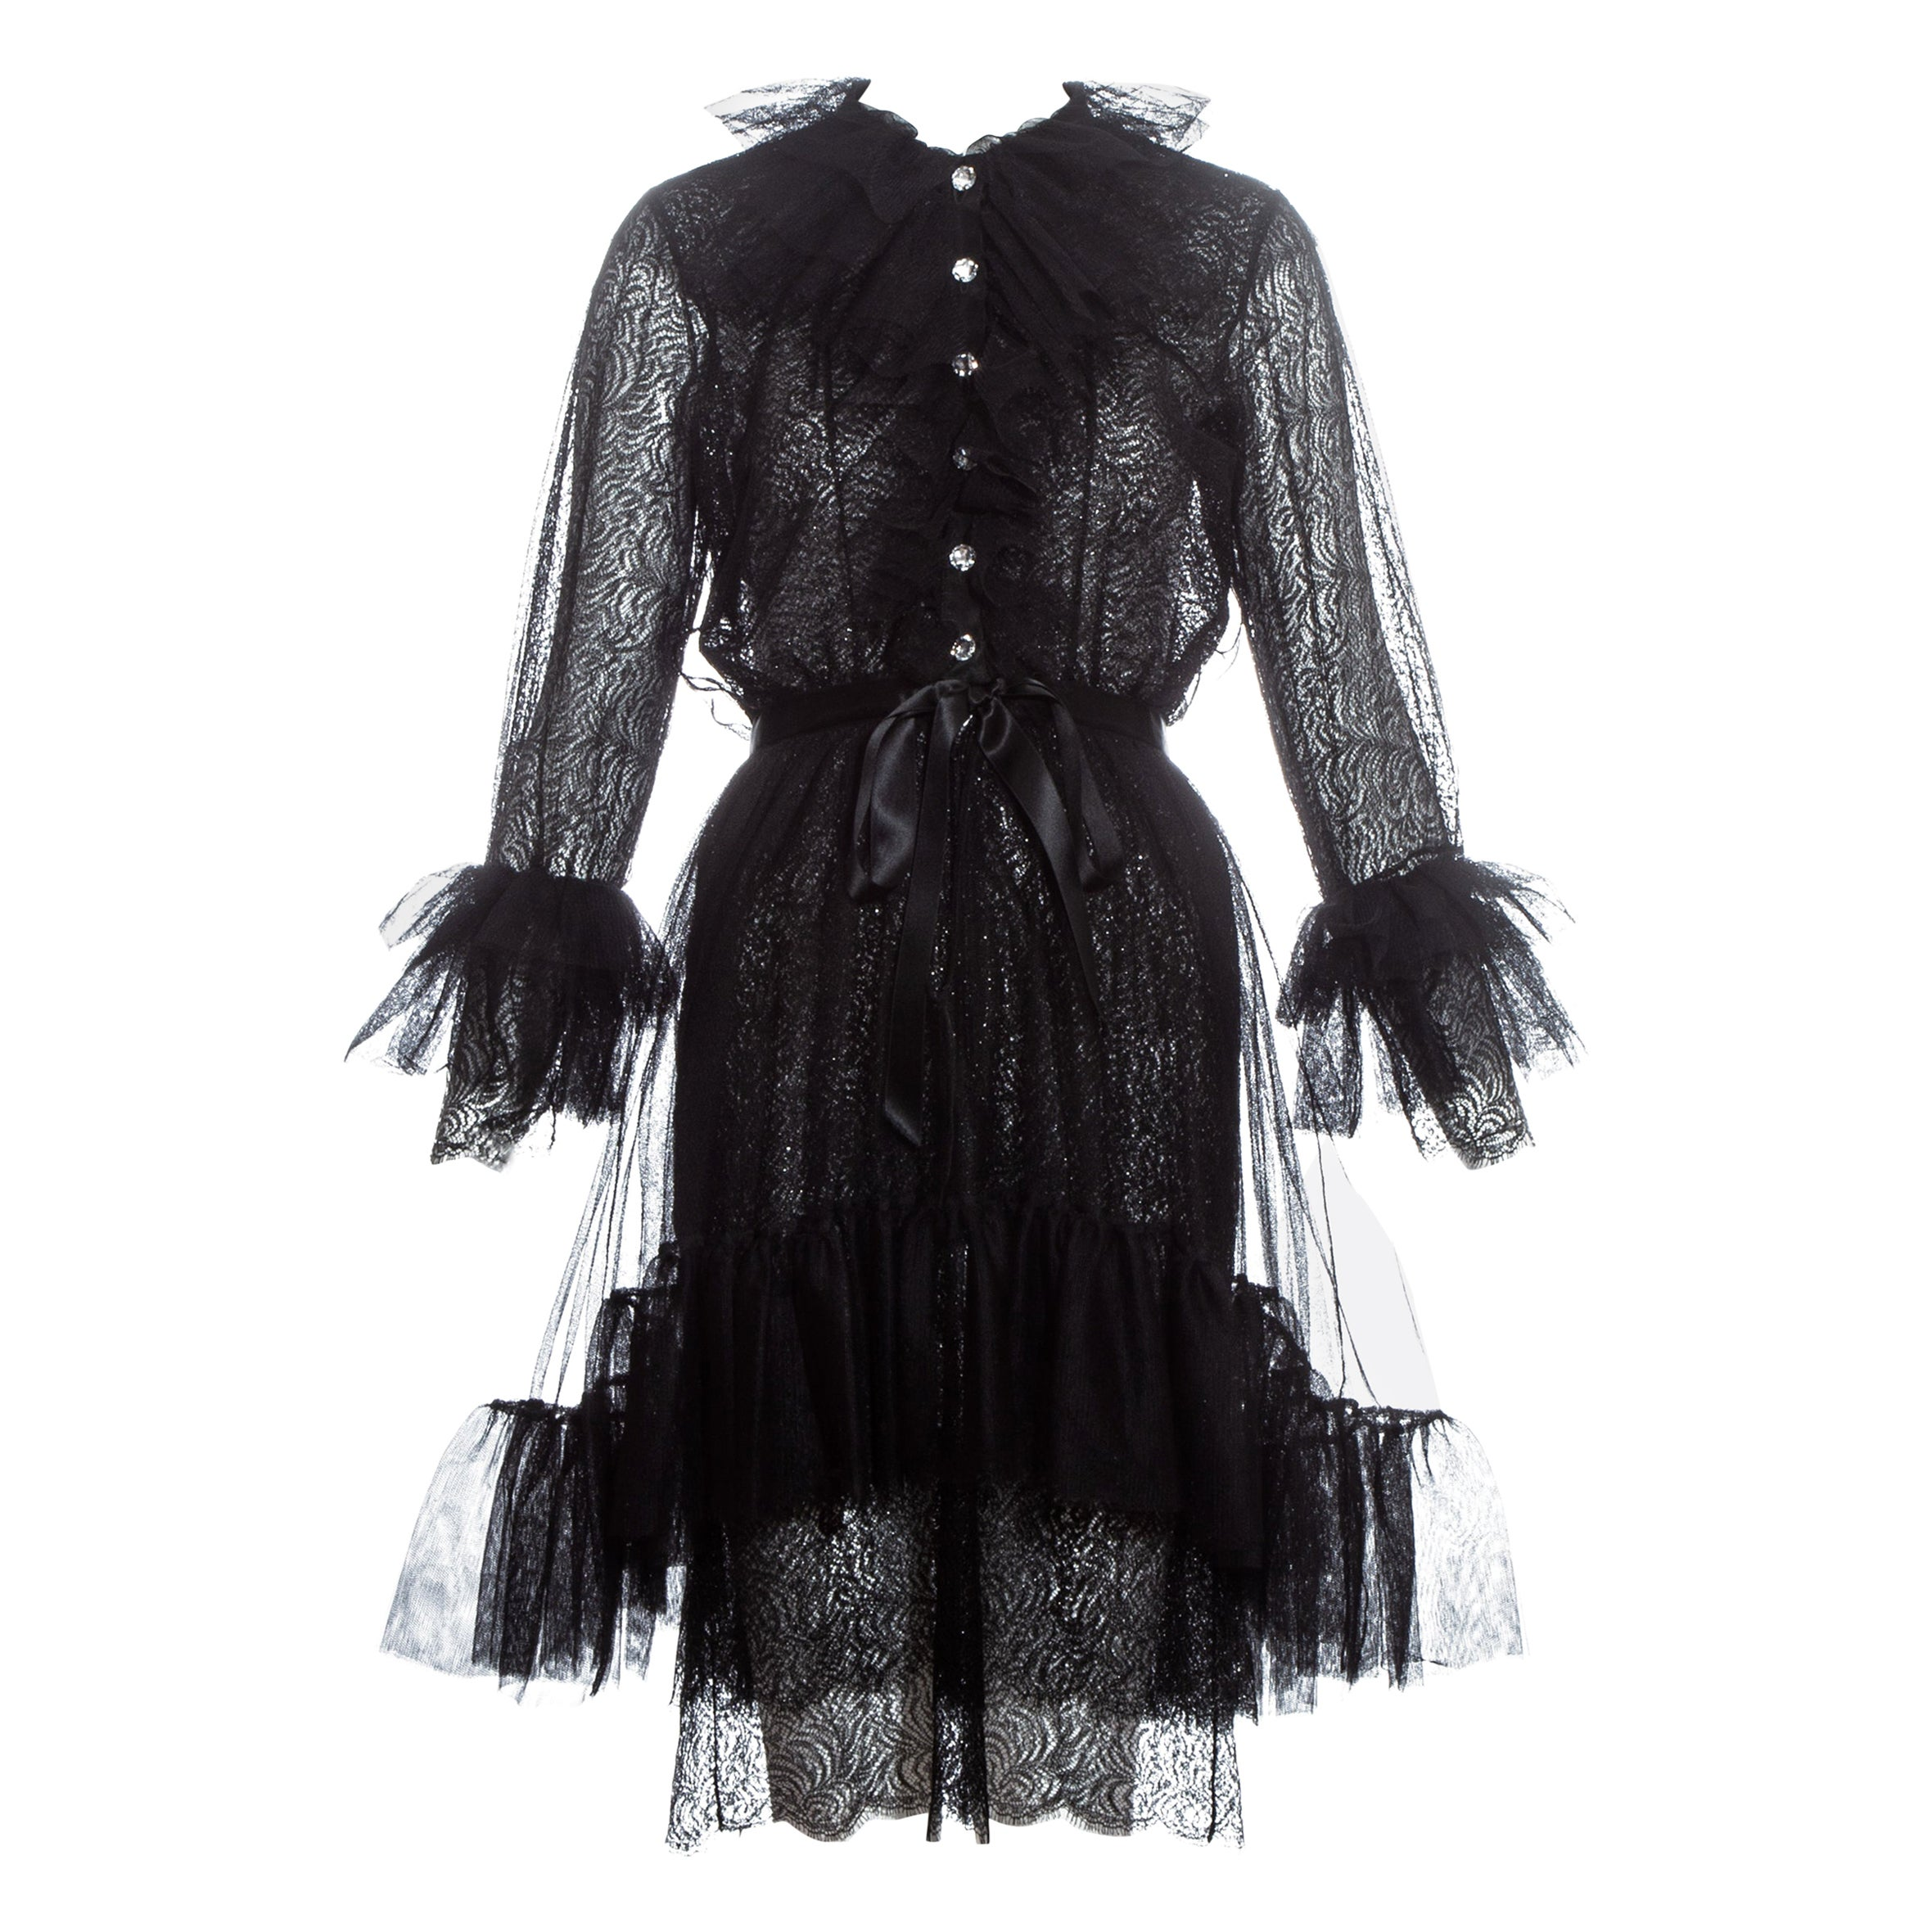 Yves Saint Laurent black lace and tulle crystal cocktail dress, fw 1993